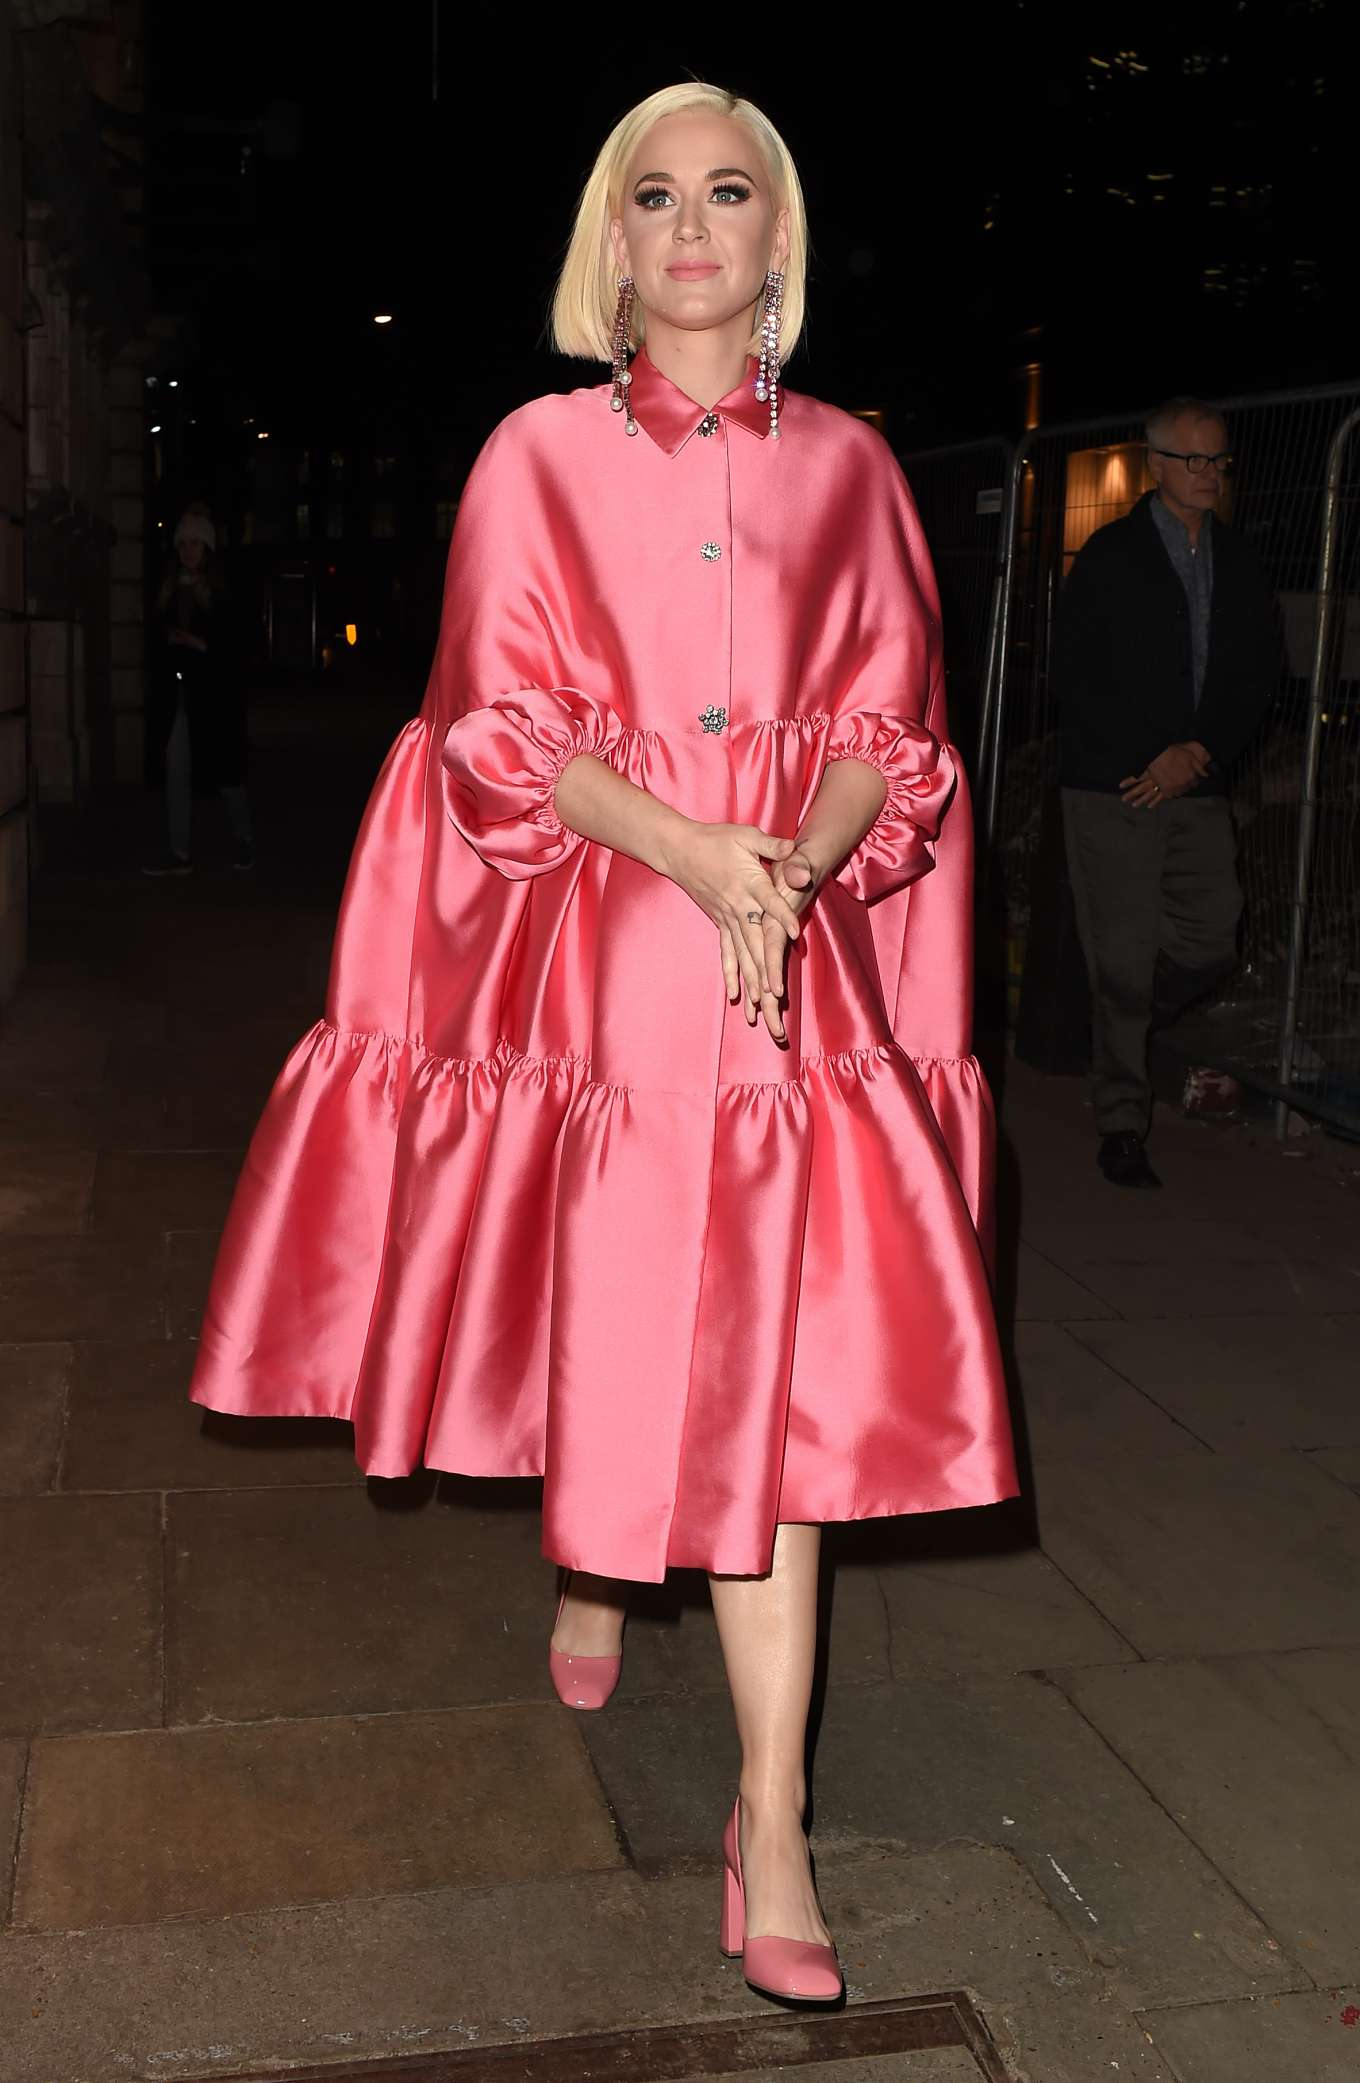 Katy Perry - Arriving at Shaftesbury theatre in London